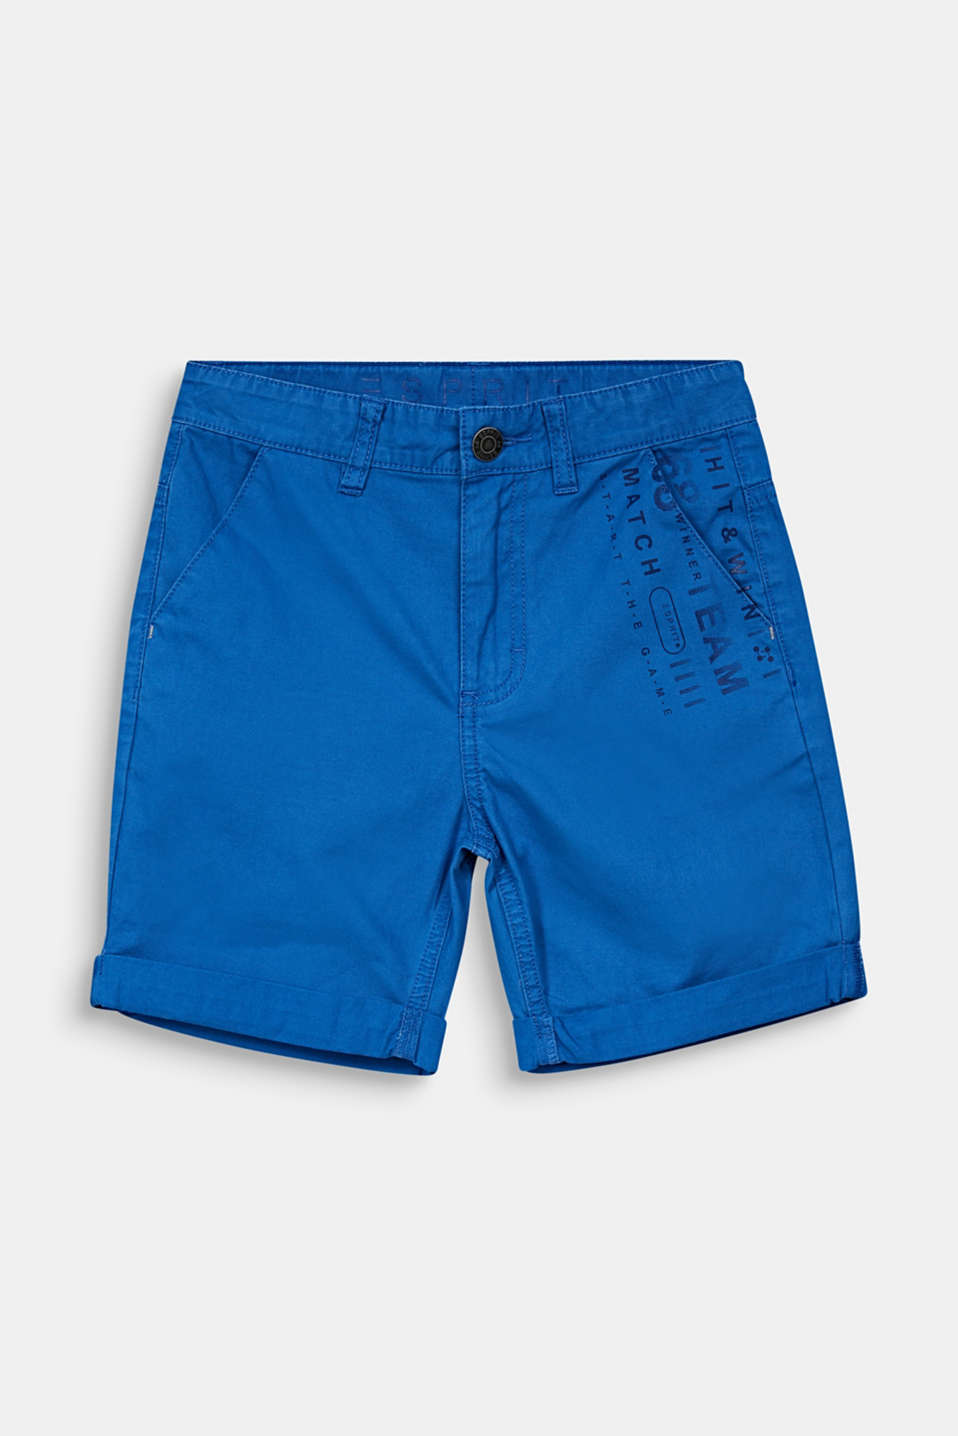 Woven shorts with a print, 100% cotton, LCELECTRIC BLUE, detail image number 0